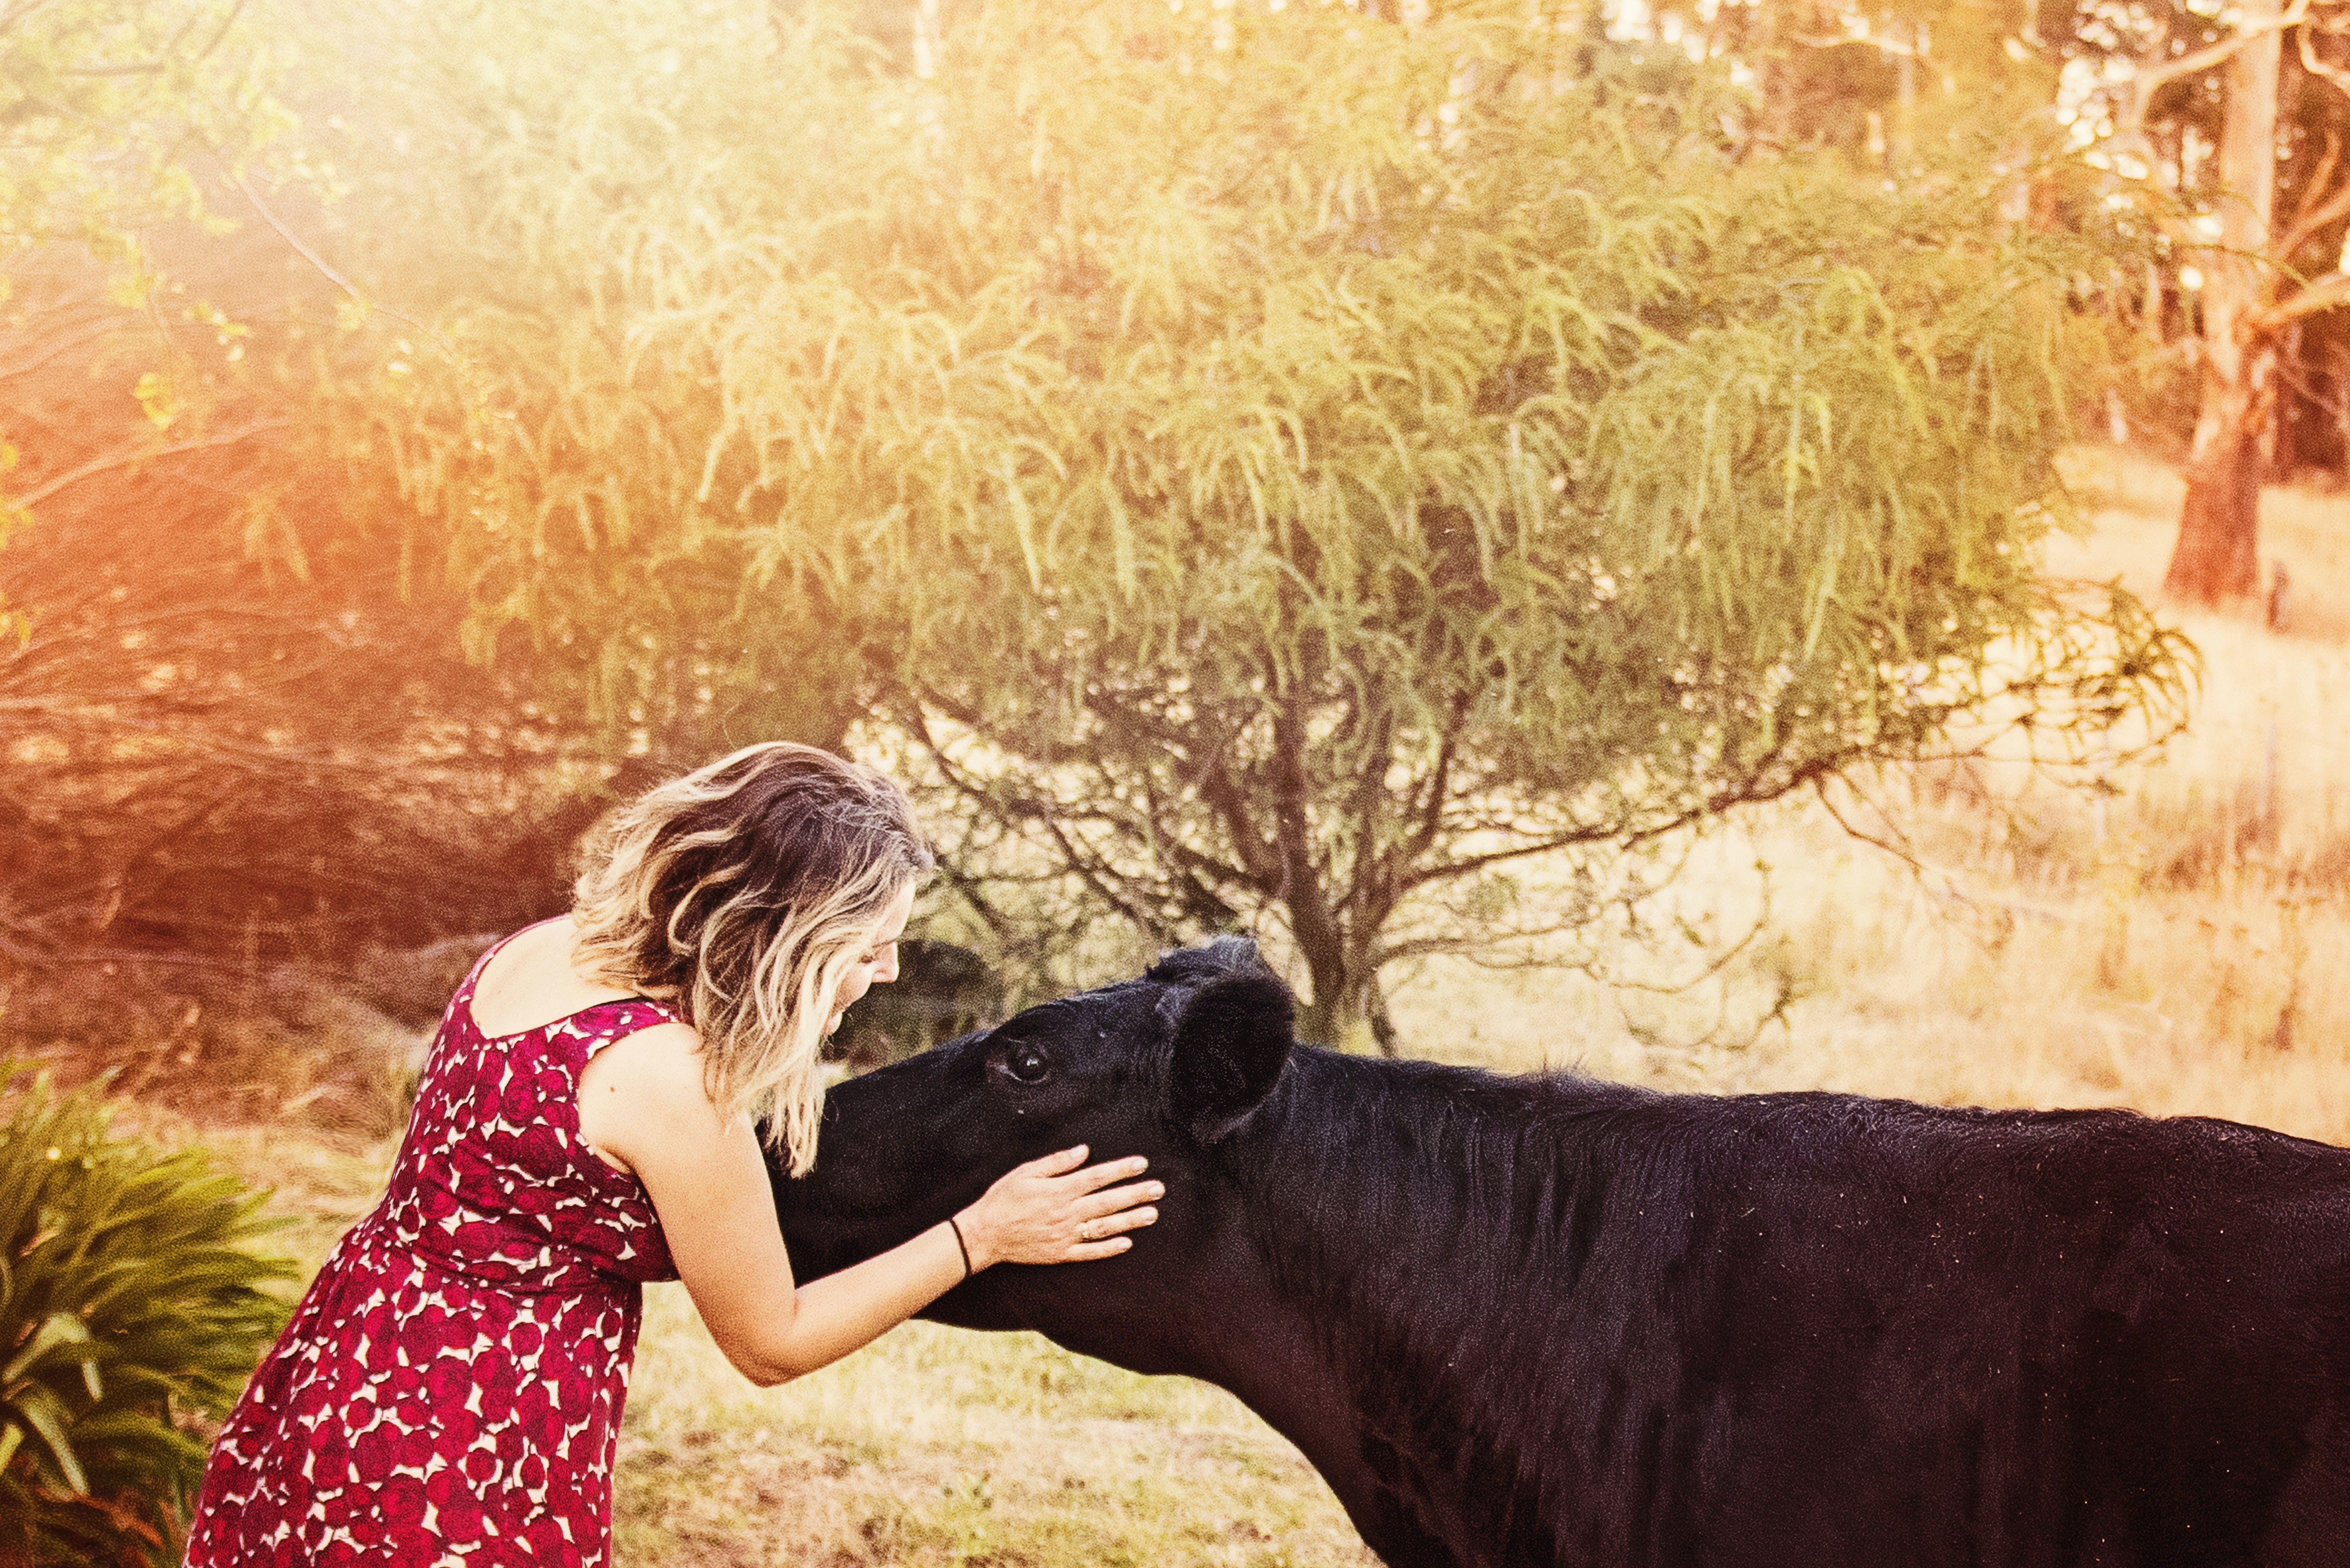 Woman Wearing Floral Dress Holding Cattle Near Trees